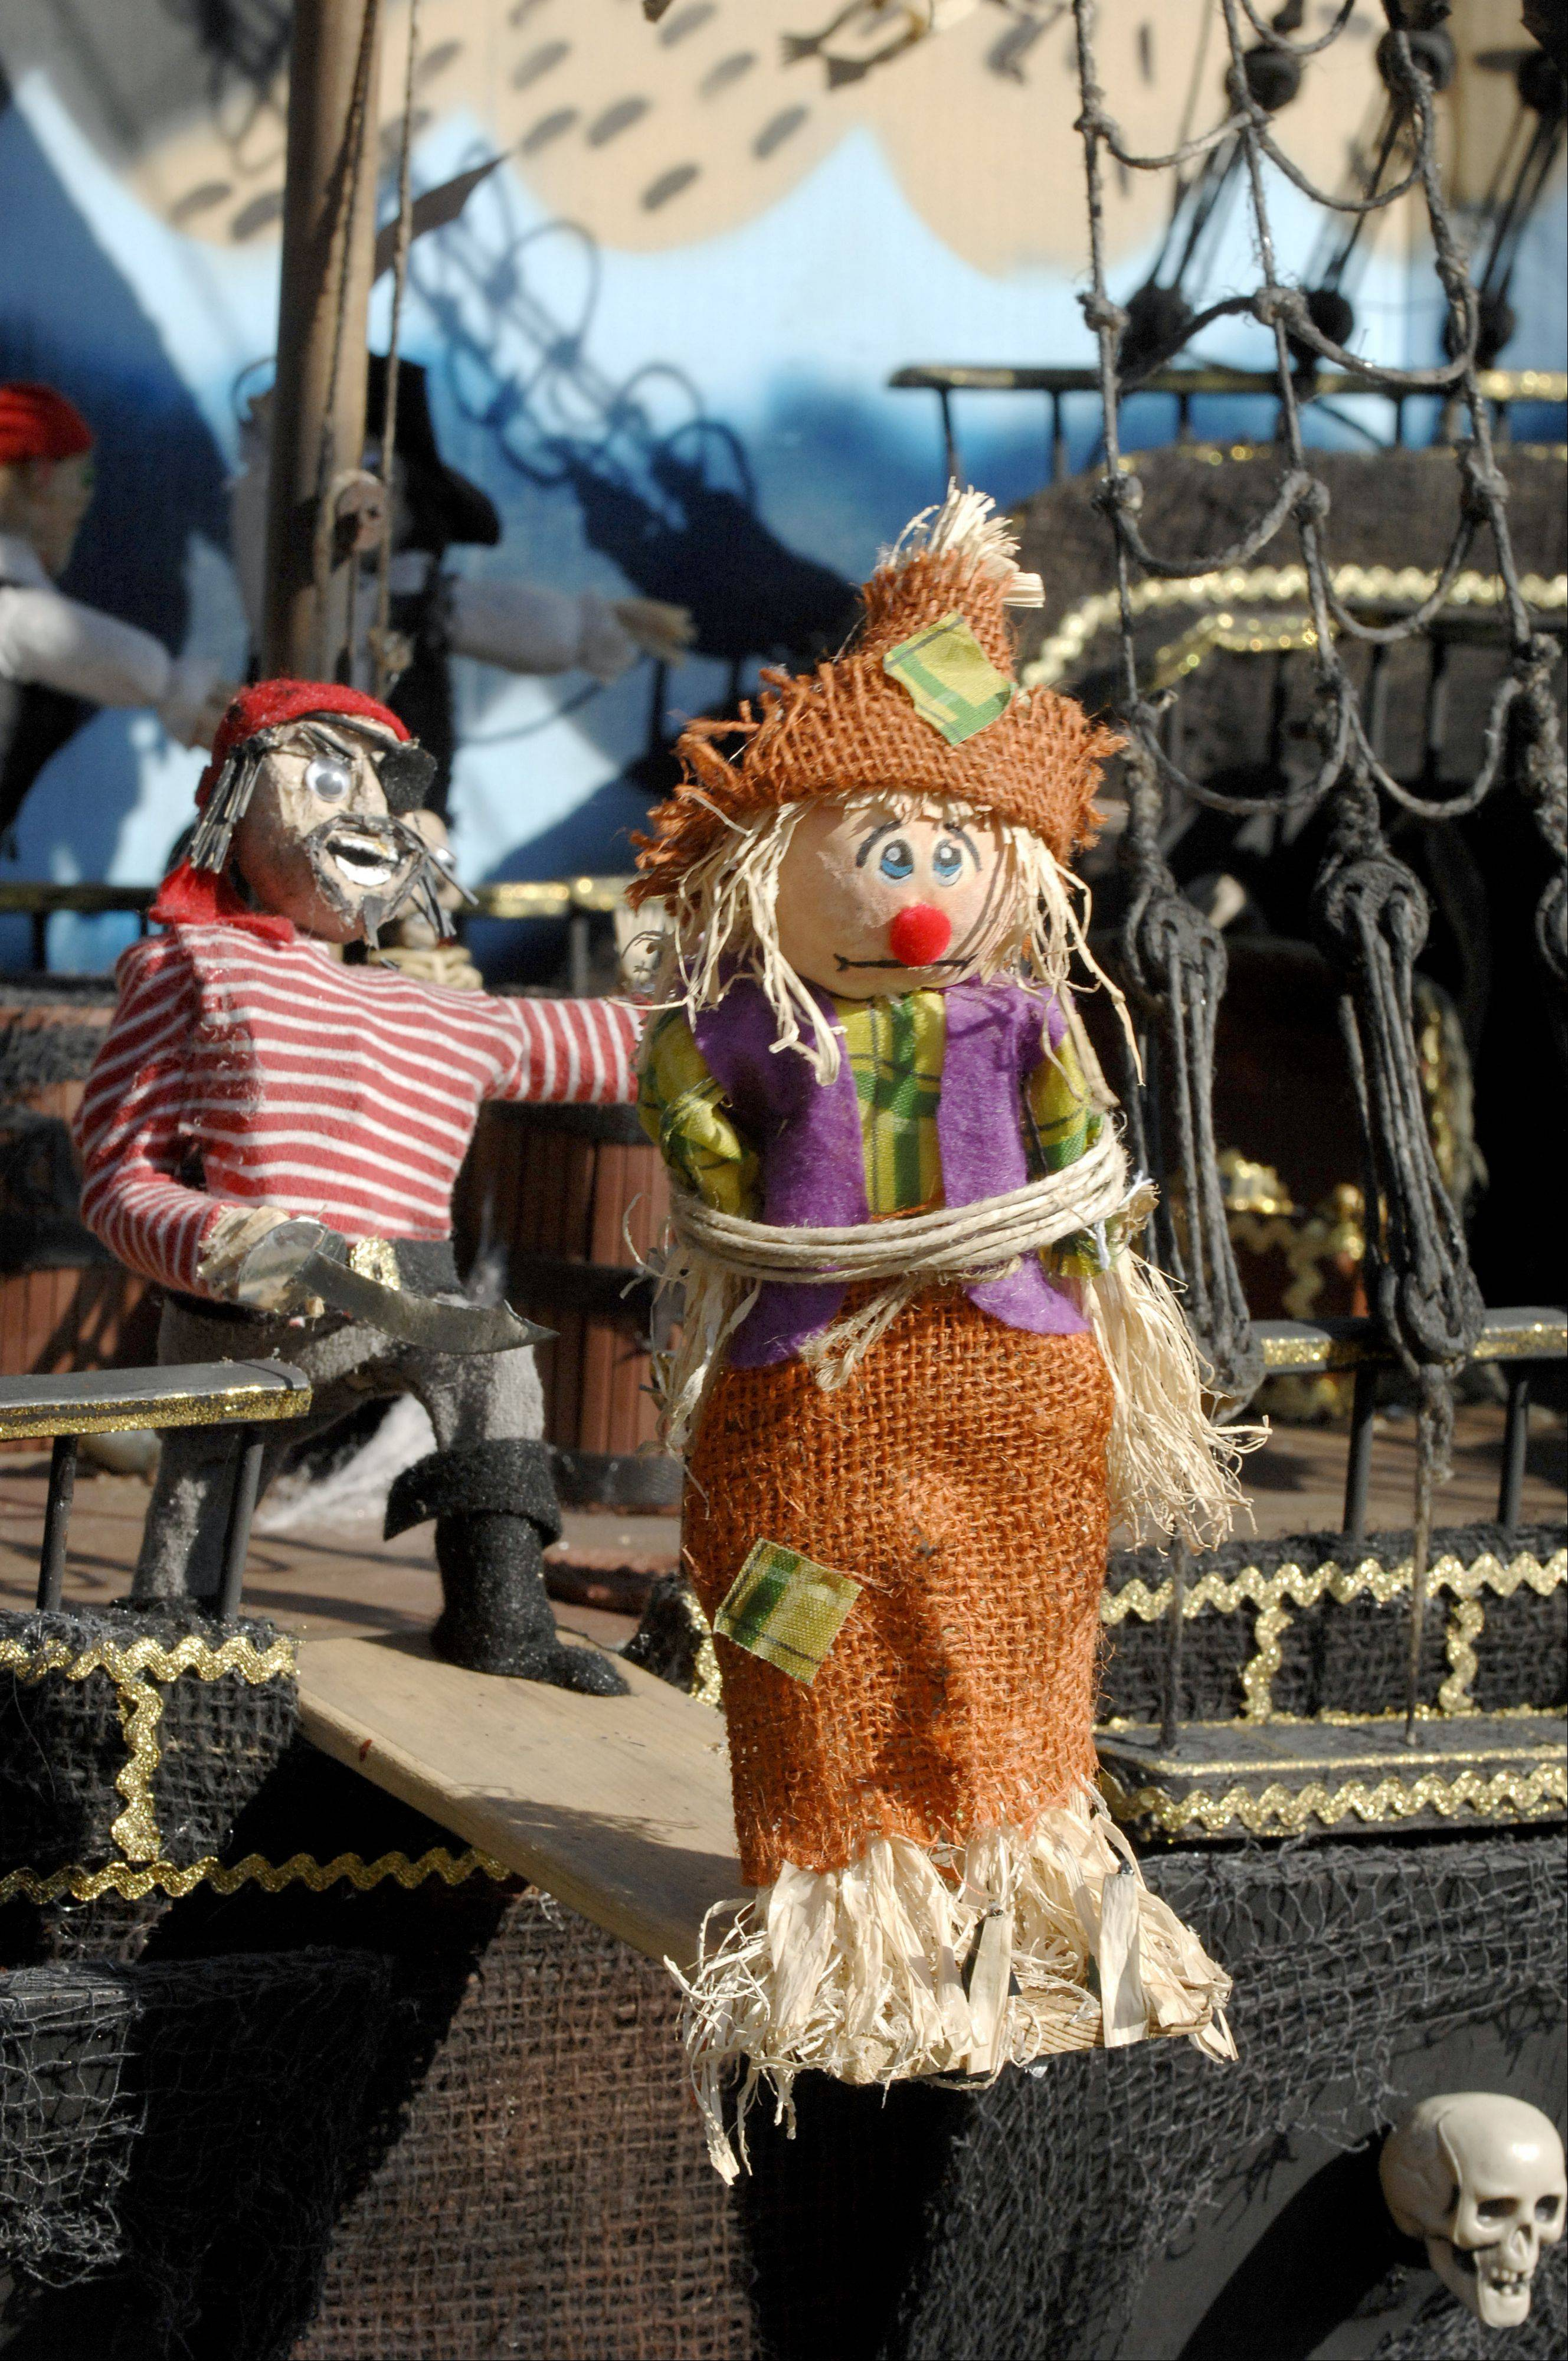 Vote for your favorite scarecrow at the annual St. Charles Scarecrow Festival.